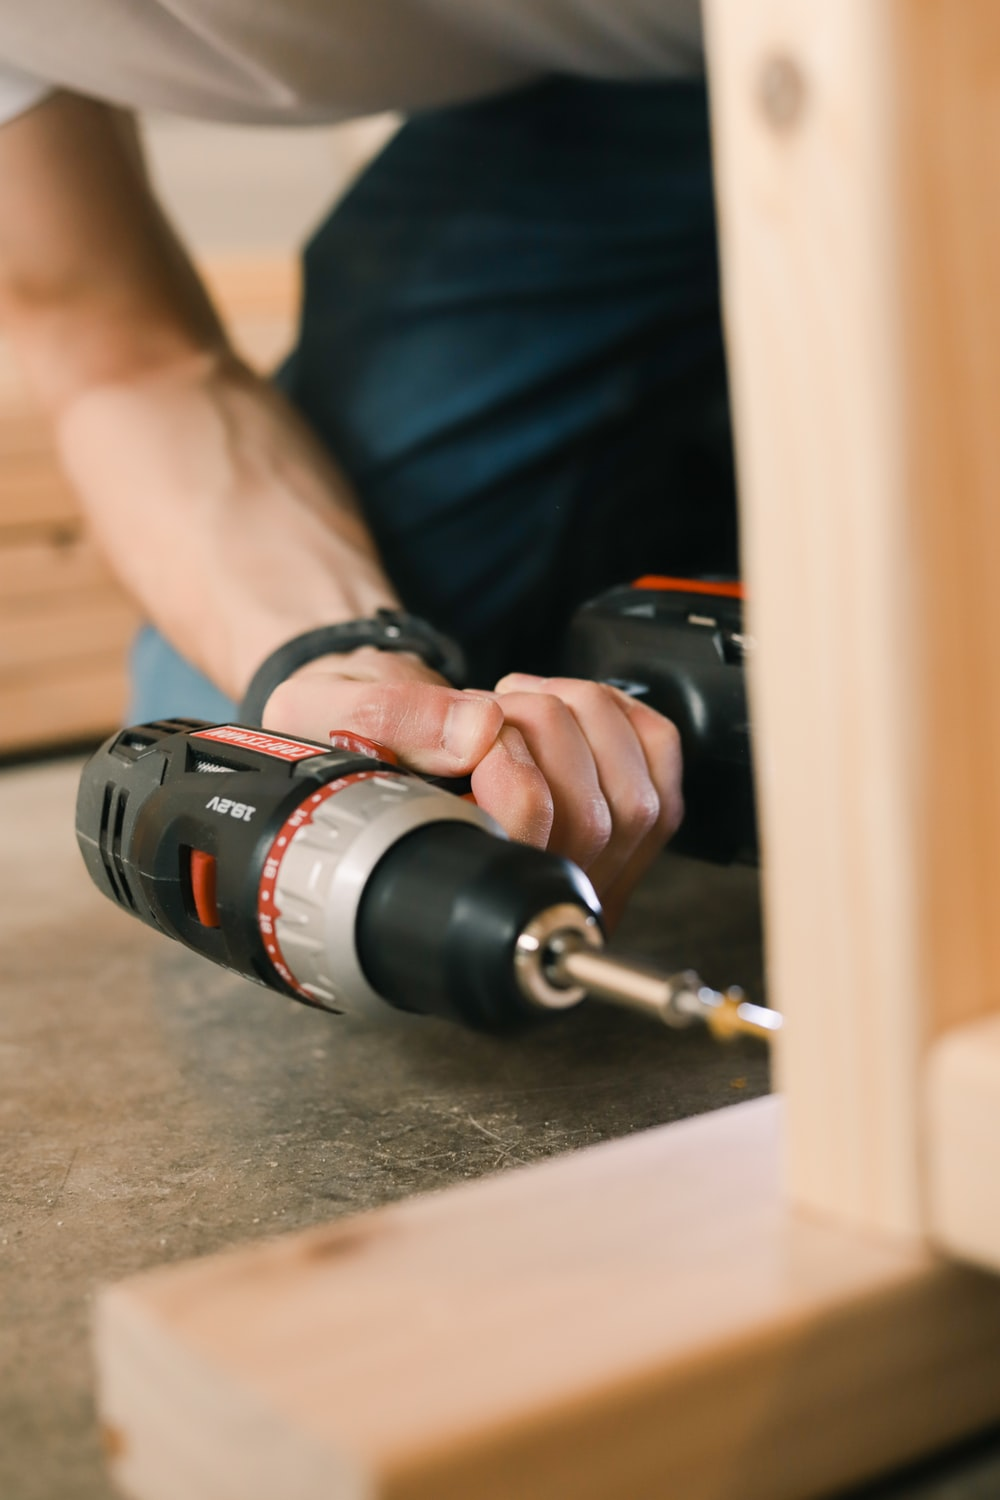 person holding black and red cordless hand drill